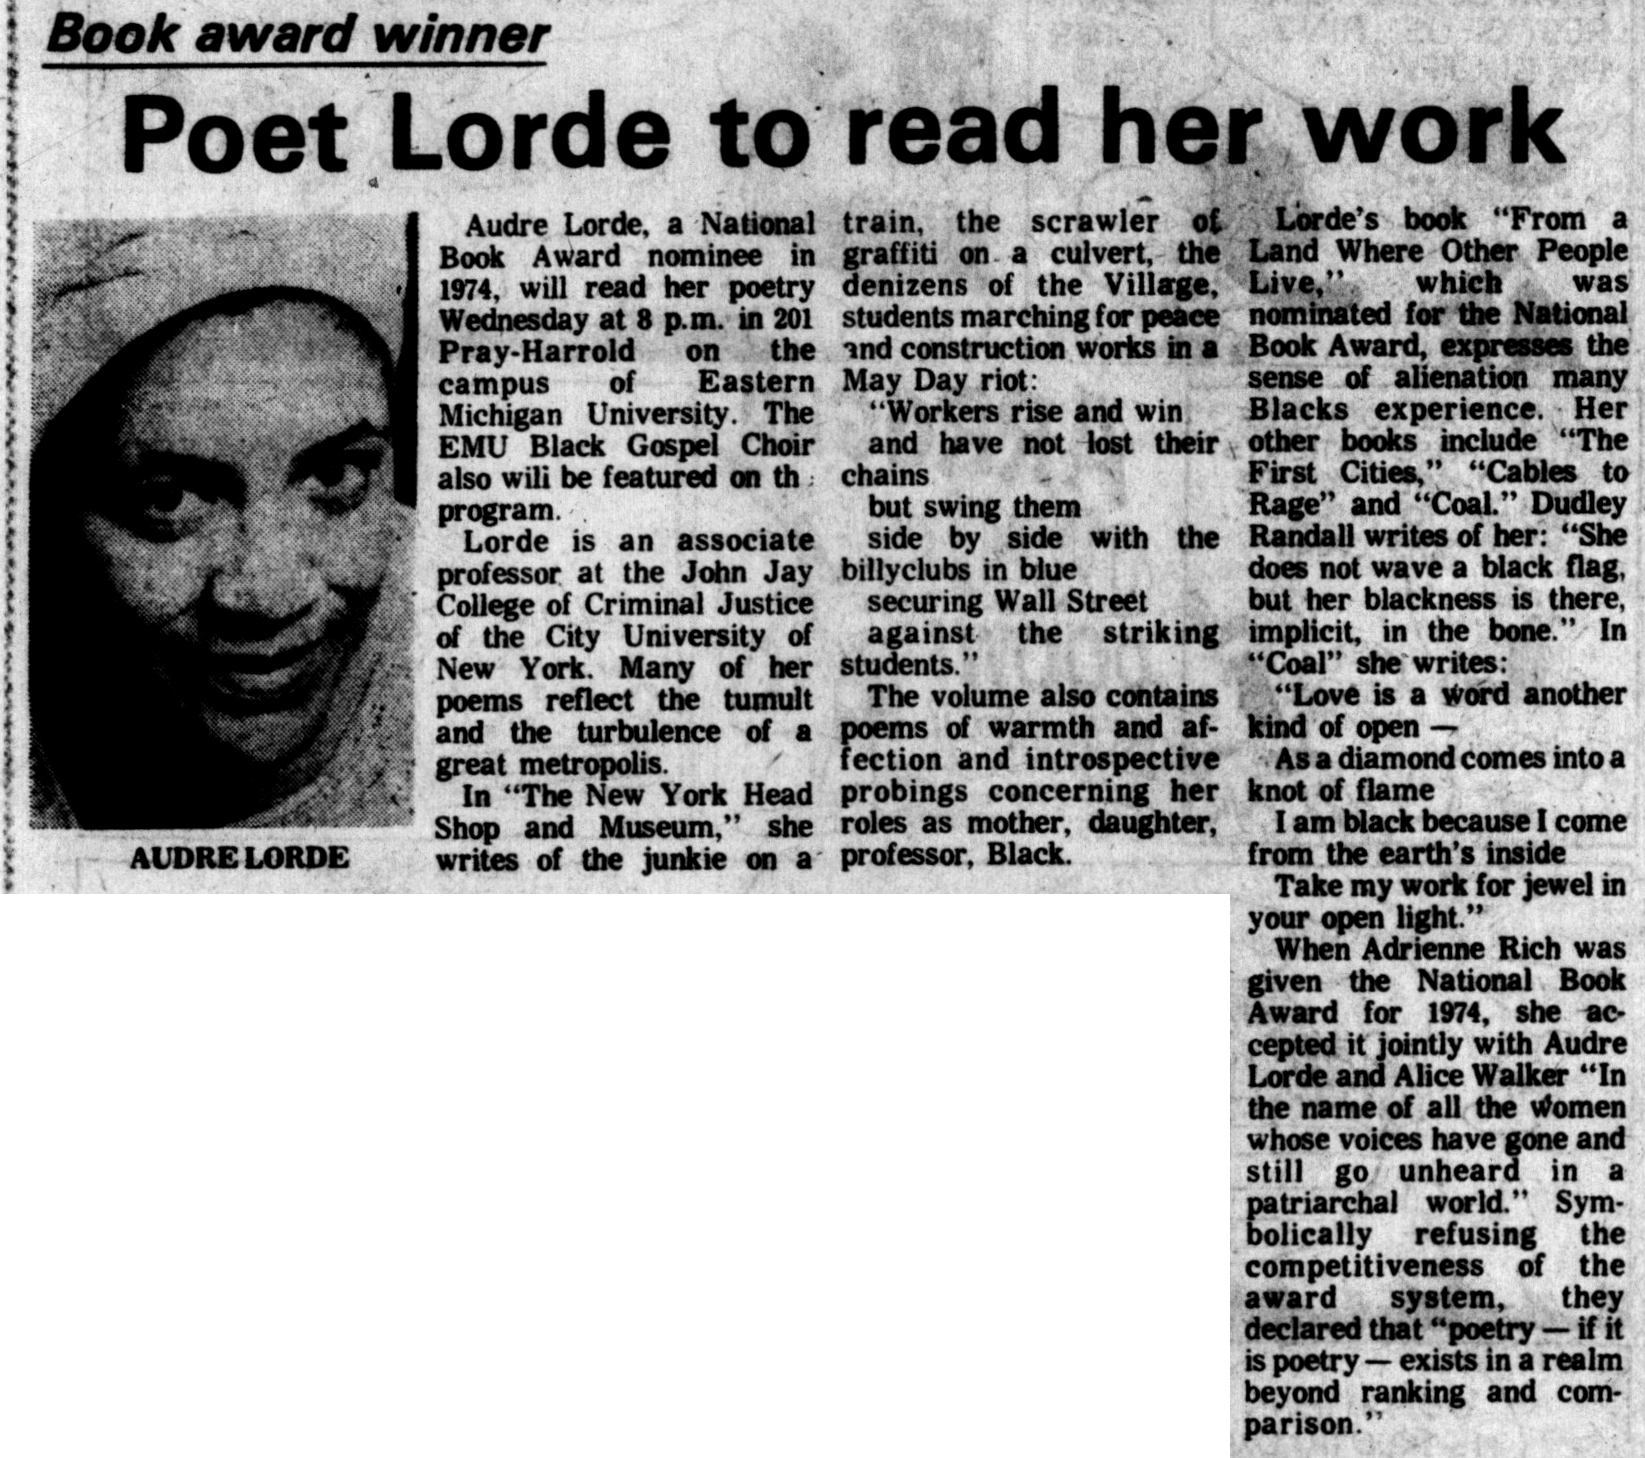 Poet Lorde to read her work image